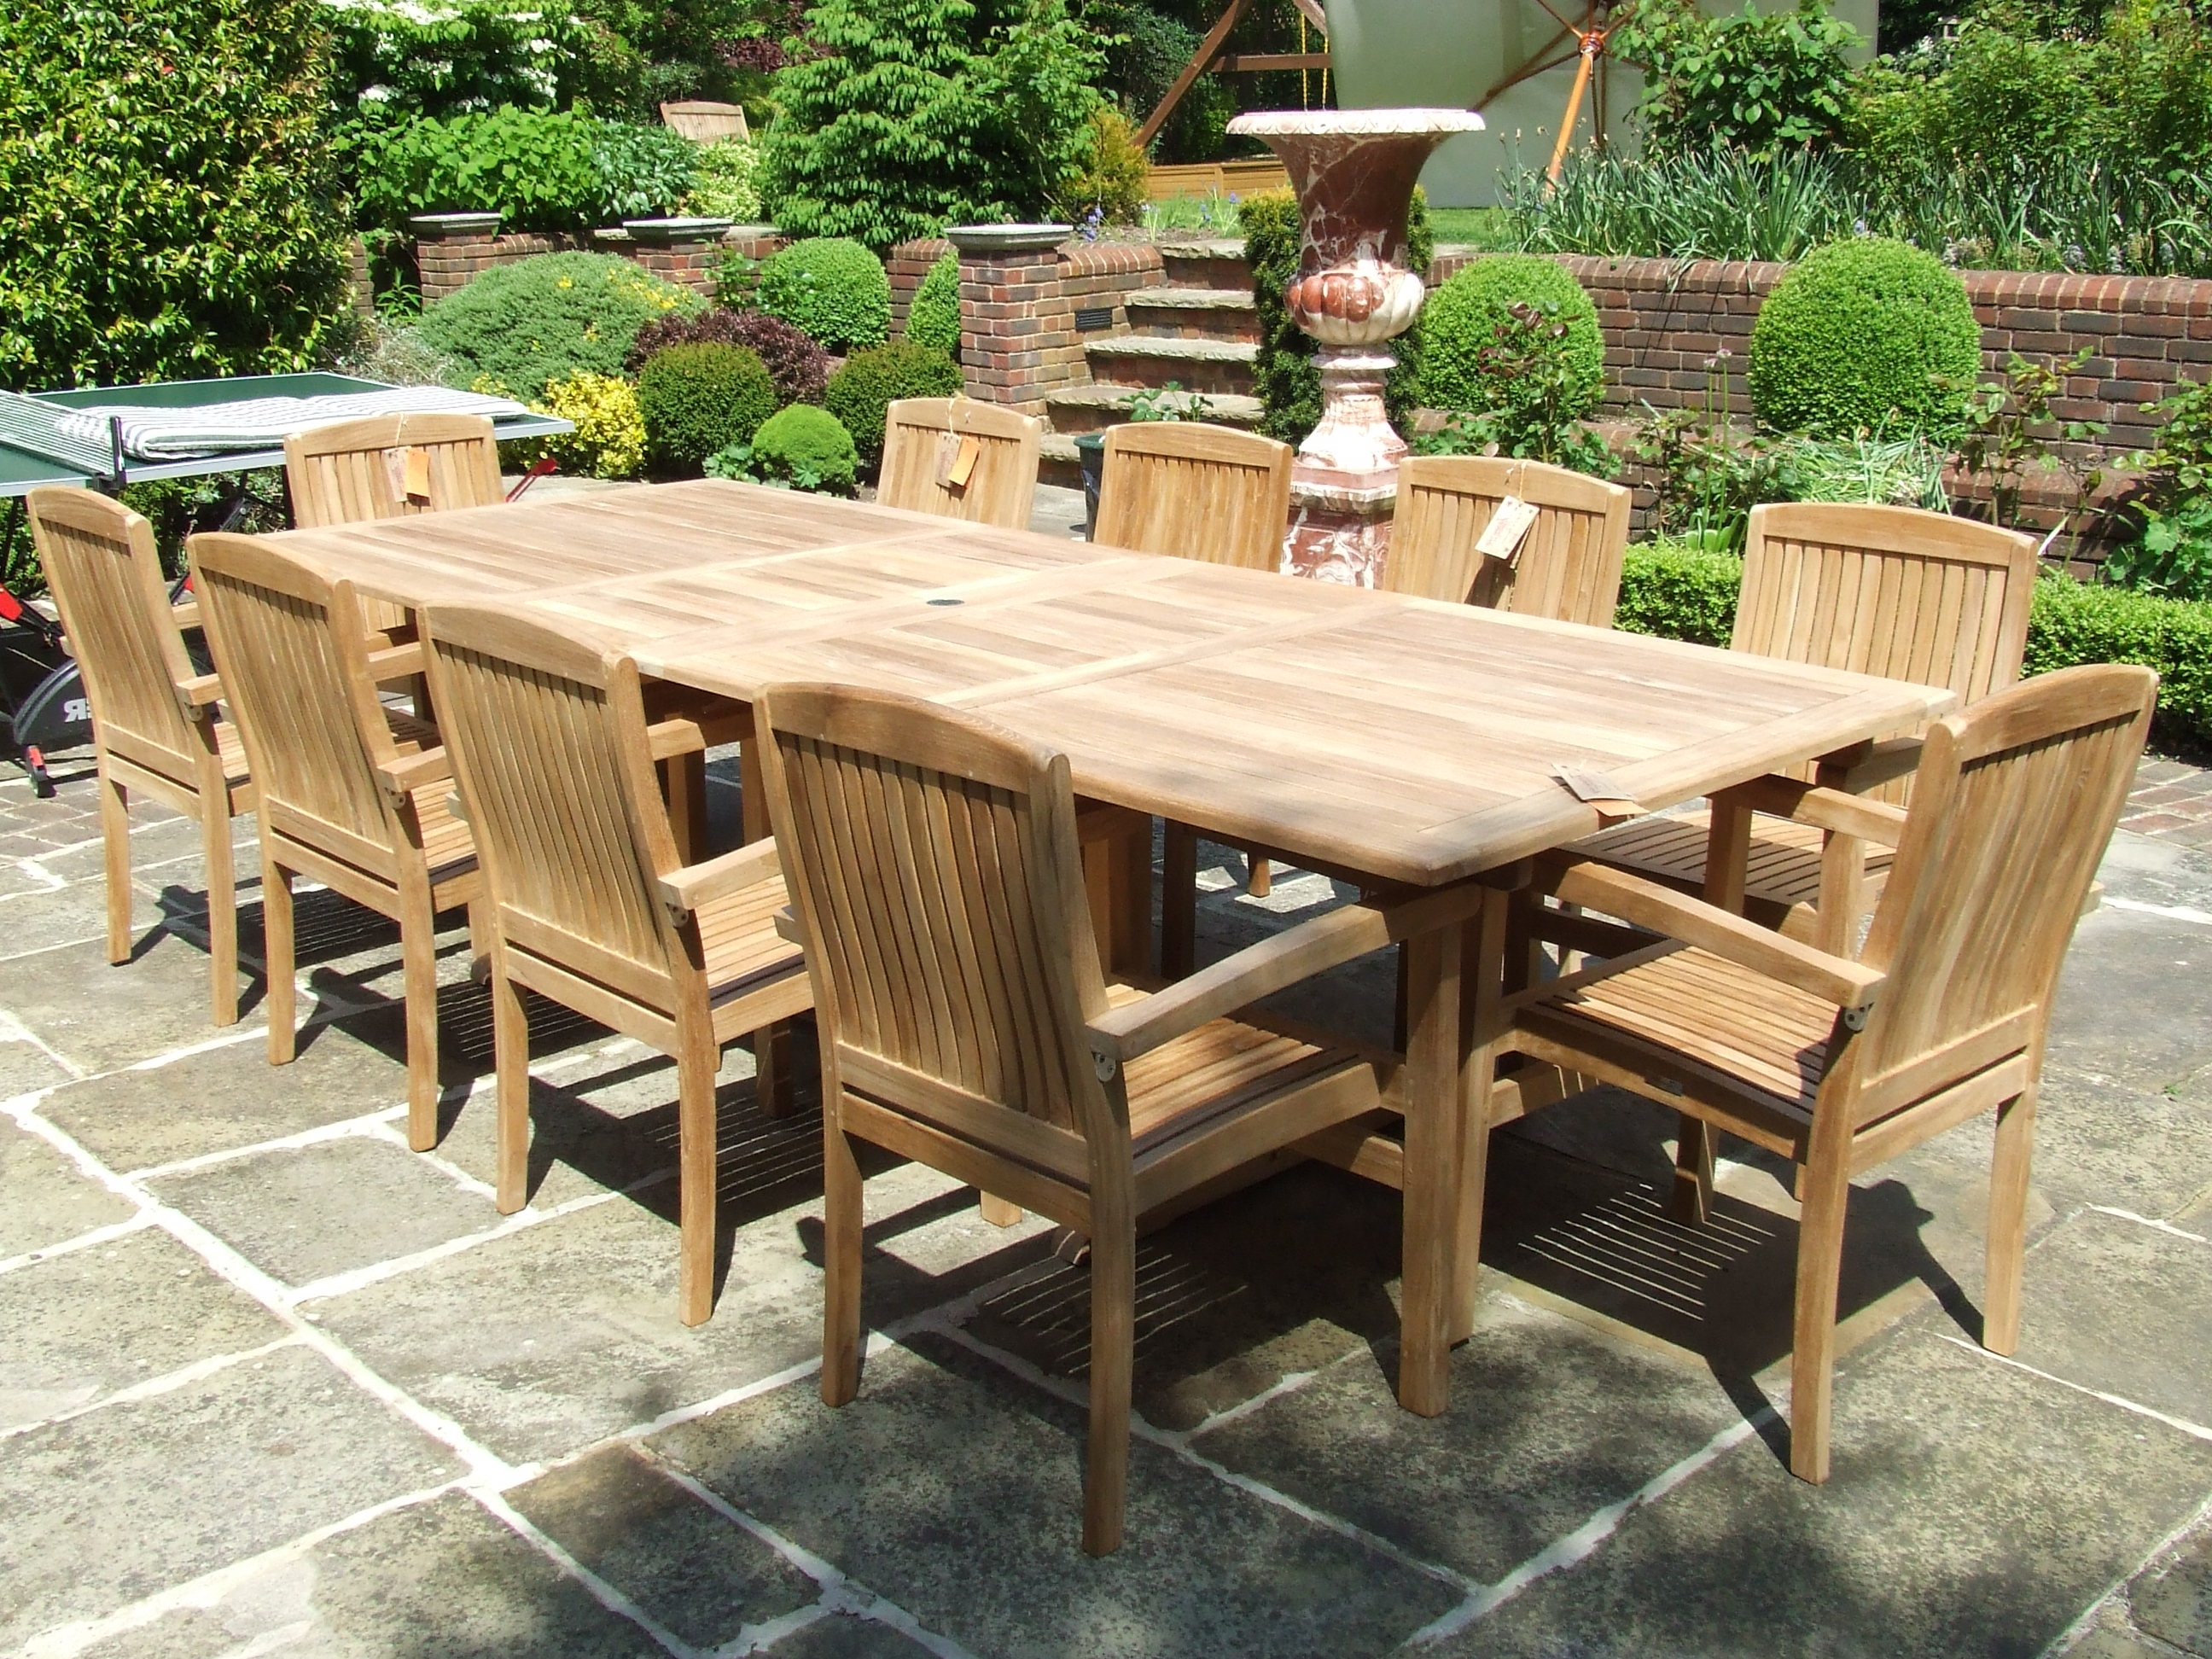 Garden Dining Tables Inside Newest Garden Dining Tables – Ujecdent (View 18 of 25)